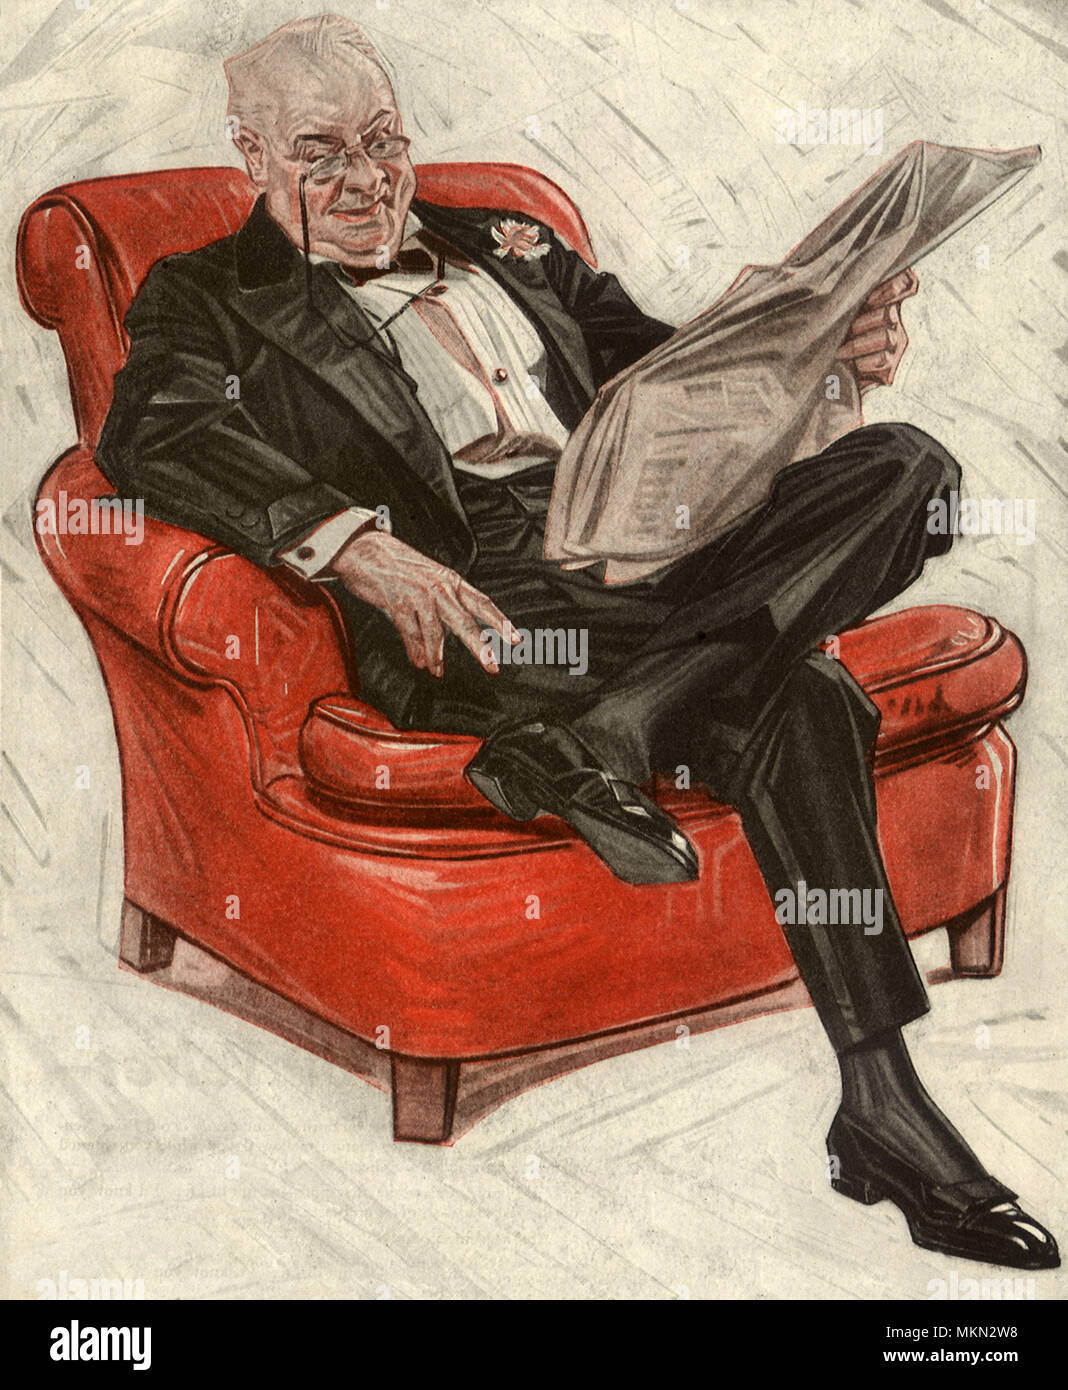 Man Reads Paper in Tux - Stock Image